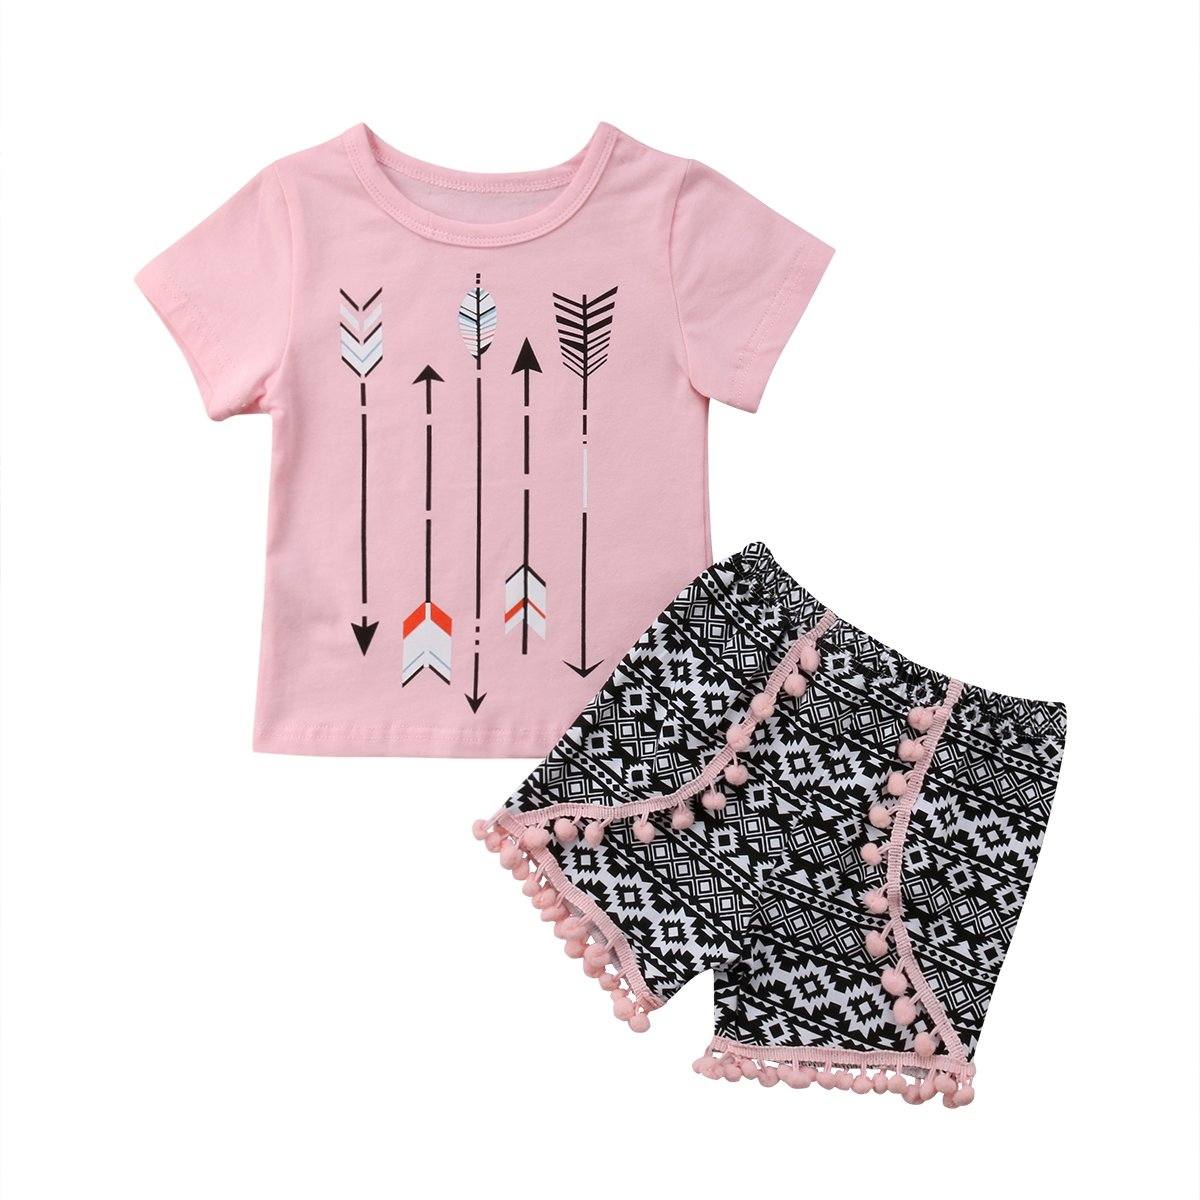 Zimaes-Baby Girl Boy Clothes Set of 3 Cotton Long-Sleeve Romper Harem Pants